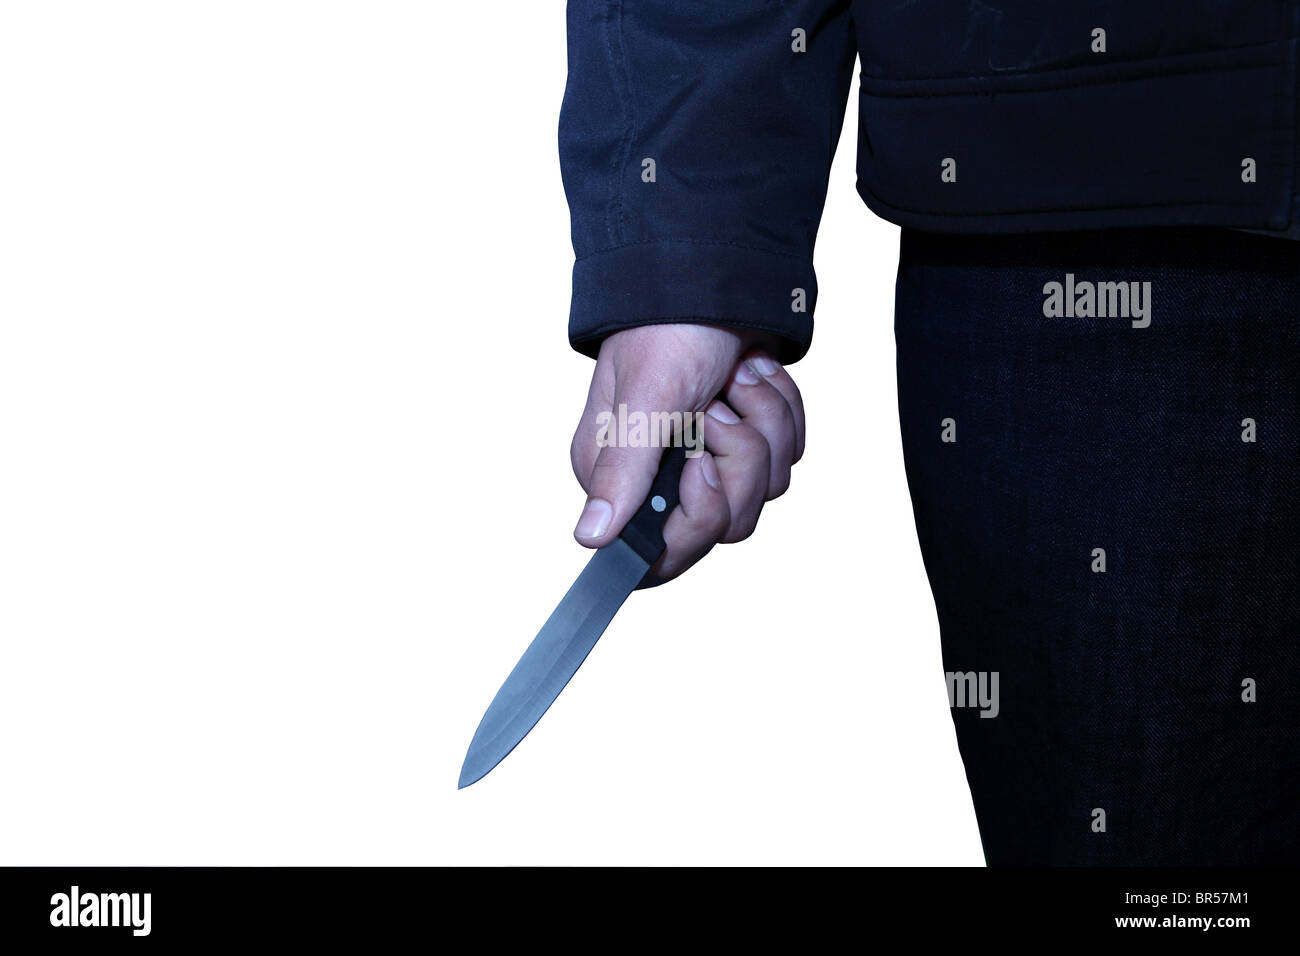 Hand of a young male holding a knife cut out on a white background - Stock Image